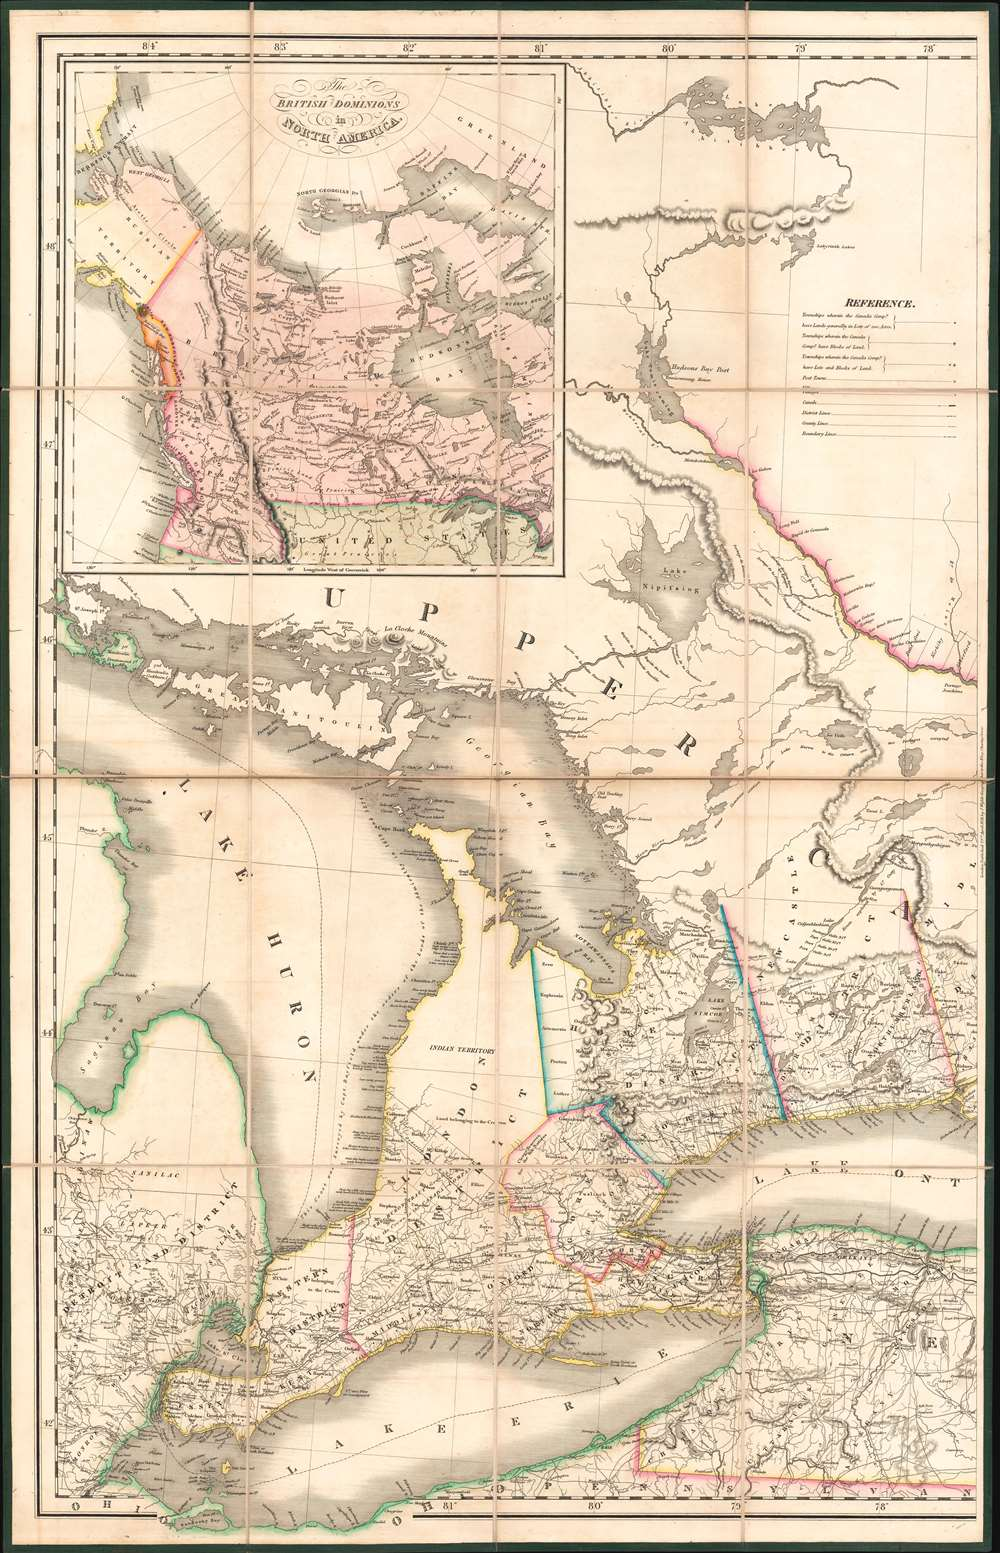 To His Most Excellent Majesty King William IVth This Map of the Provinces of Lower and Upper Canada, Nova Scotia, New Brunswick, Newfoundland and Prince Edwards Island, with a Large Section of the United States... - Alternate View 4